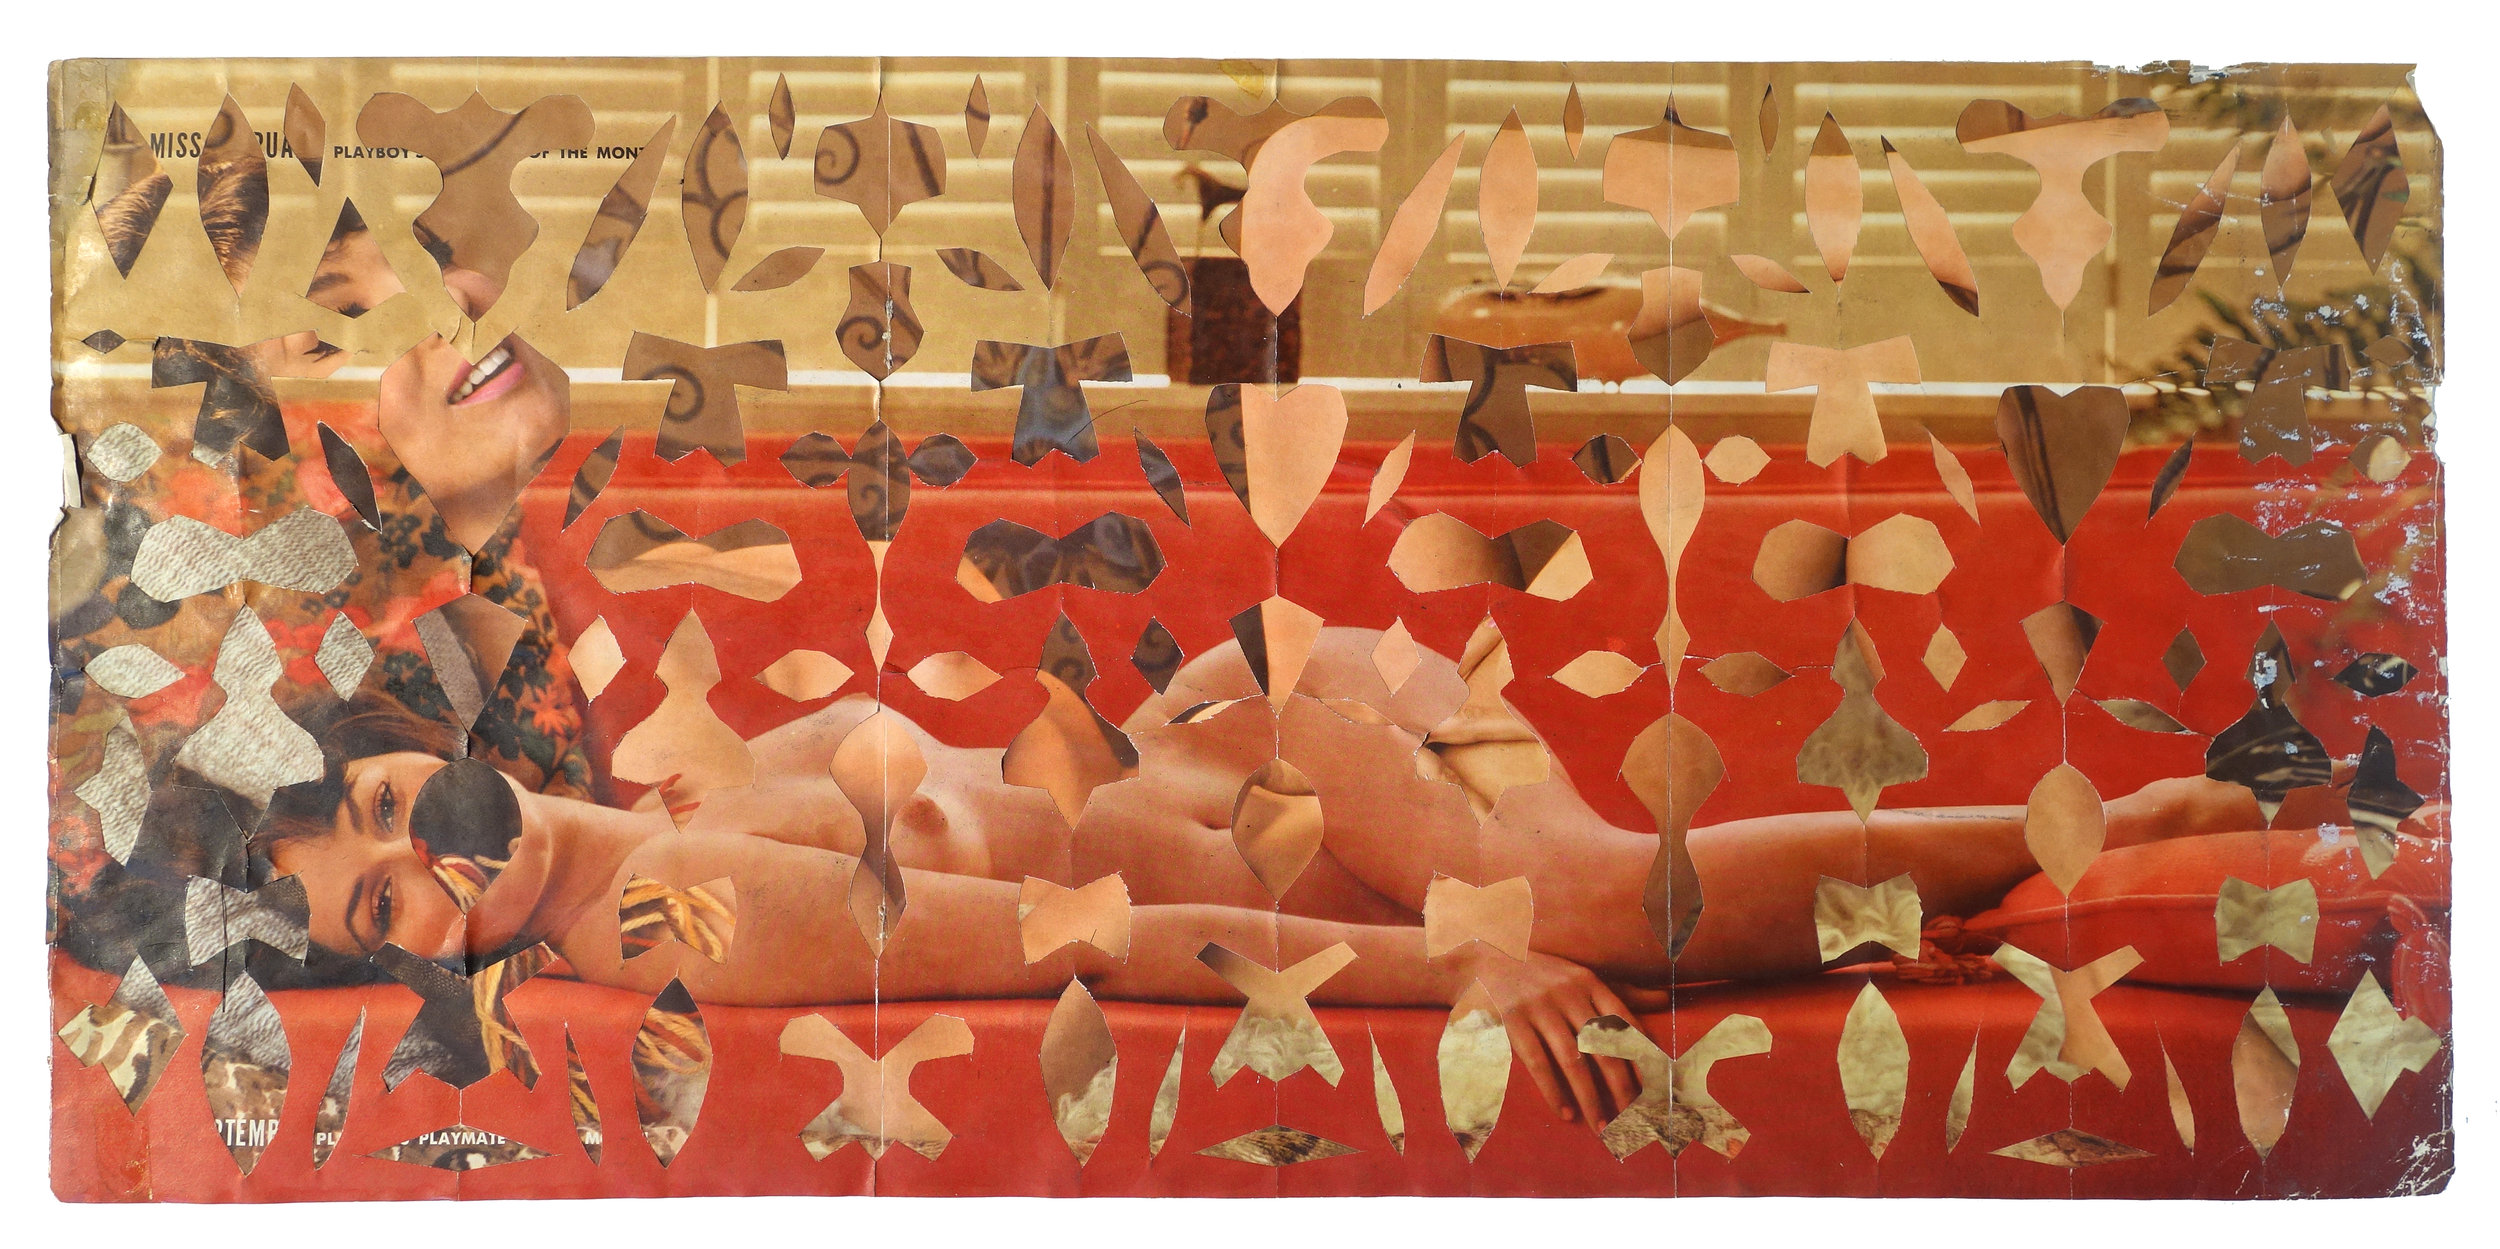 MAY WILSON (1905-1986) Untitled (Centerfold I), c. 1960s Cut paper collage Courtesy Estate of May Wilson and Pavel Zoubok Gallery